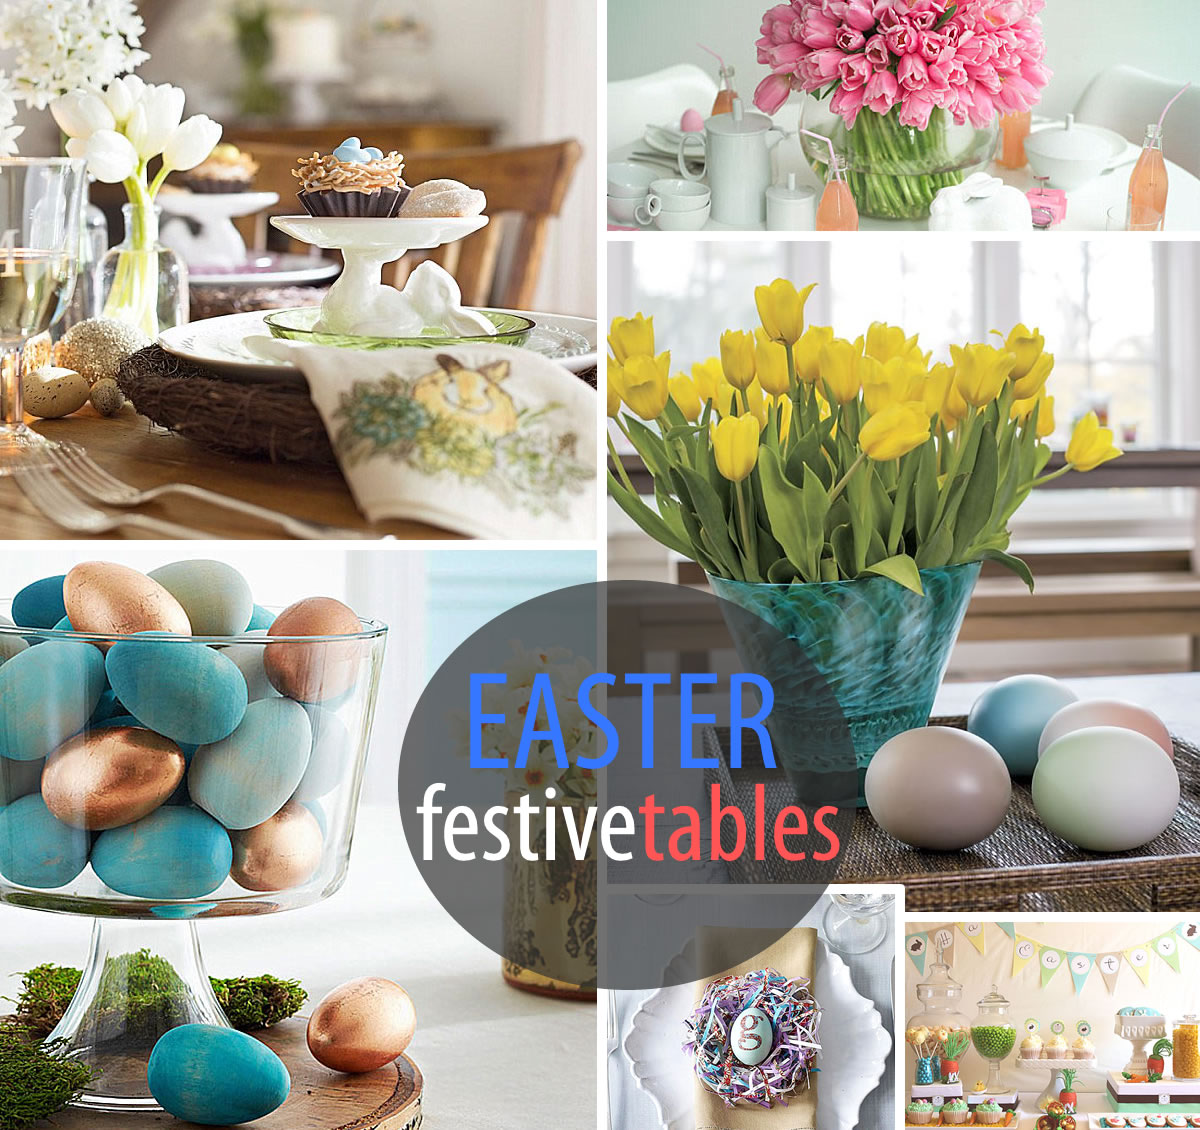 10 festive easter table settings - Easter table decorations meals special ...